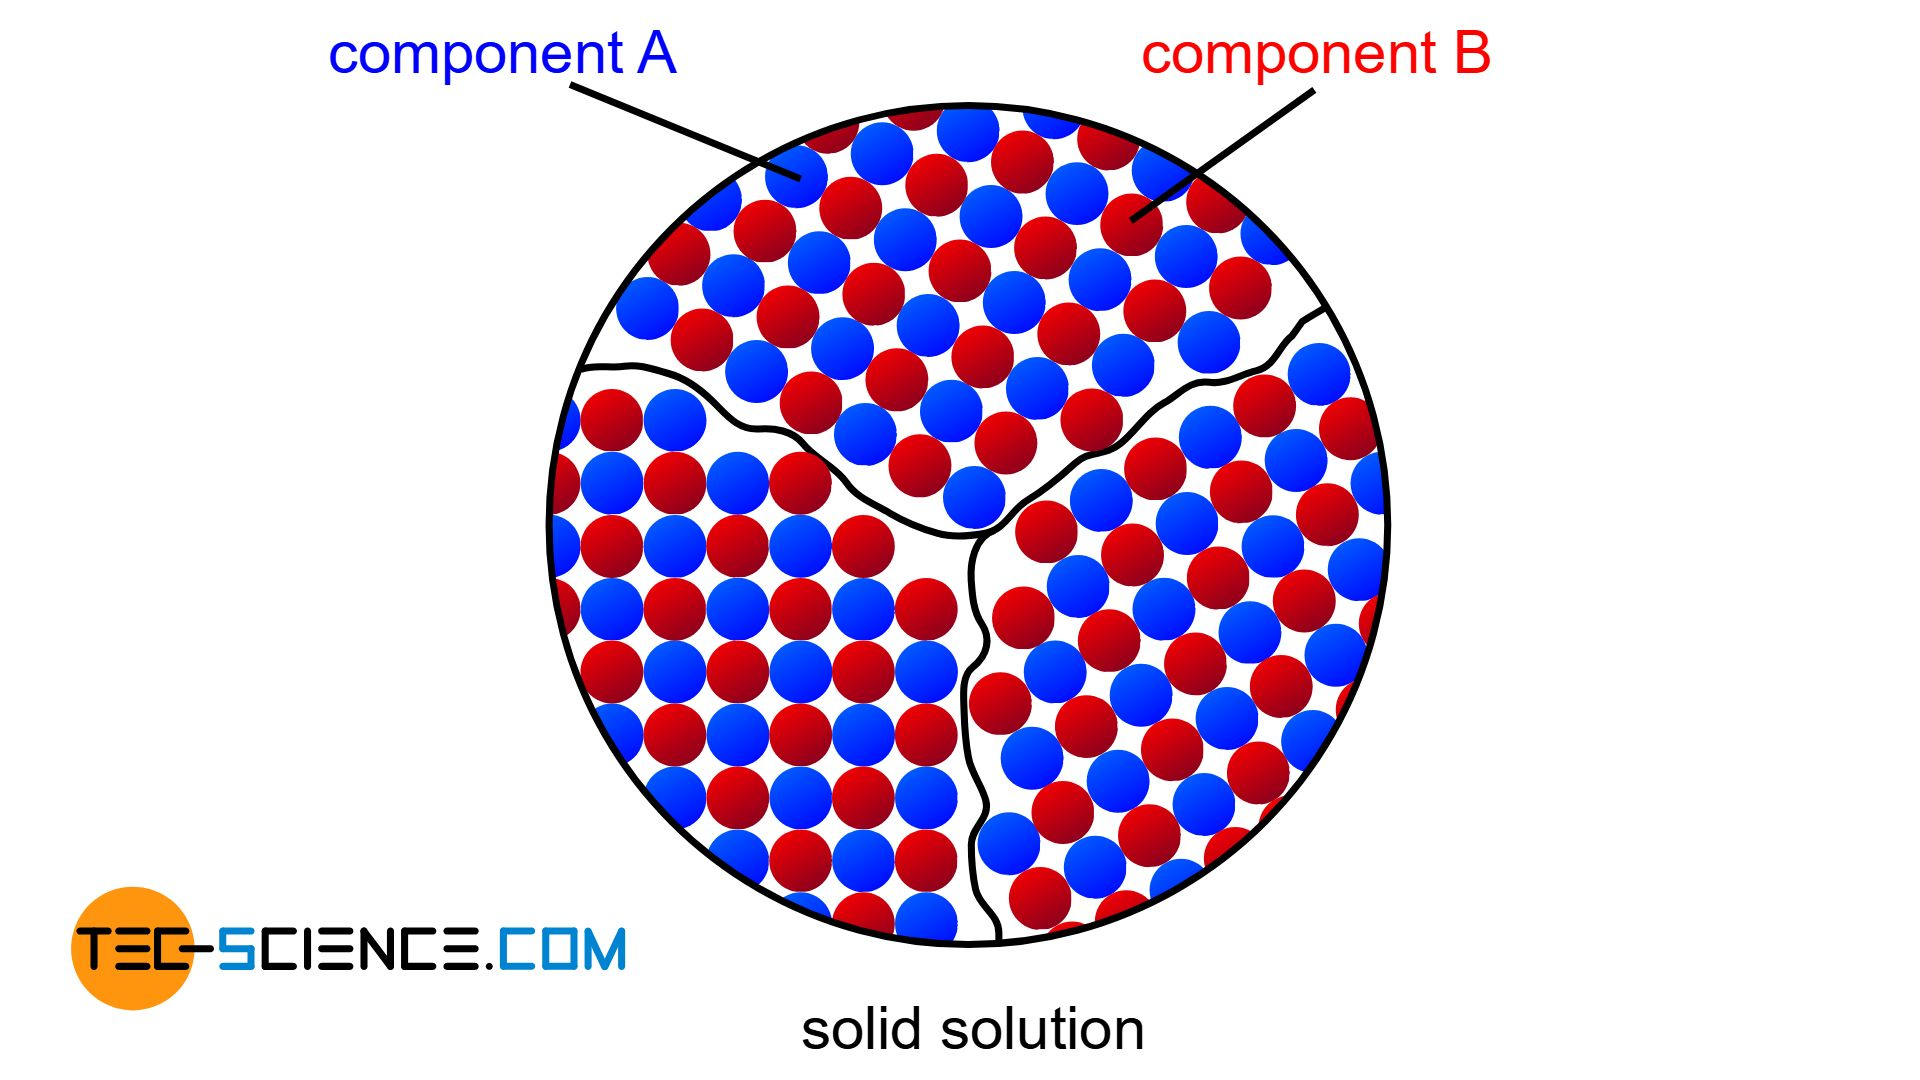 Schematic structure of a complete solubility of the two components in the solid state